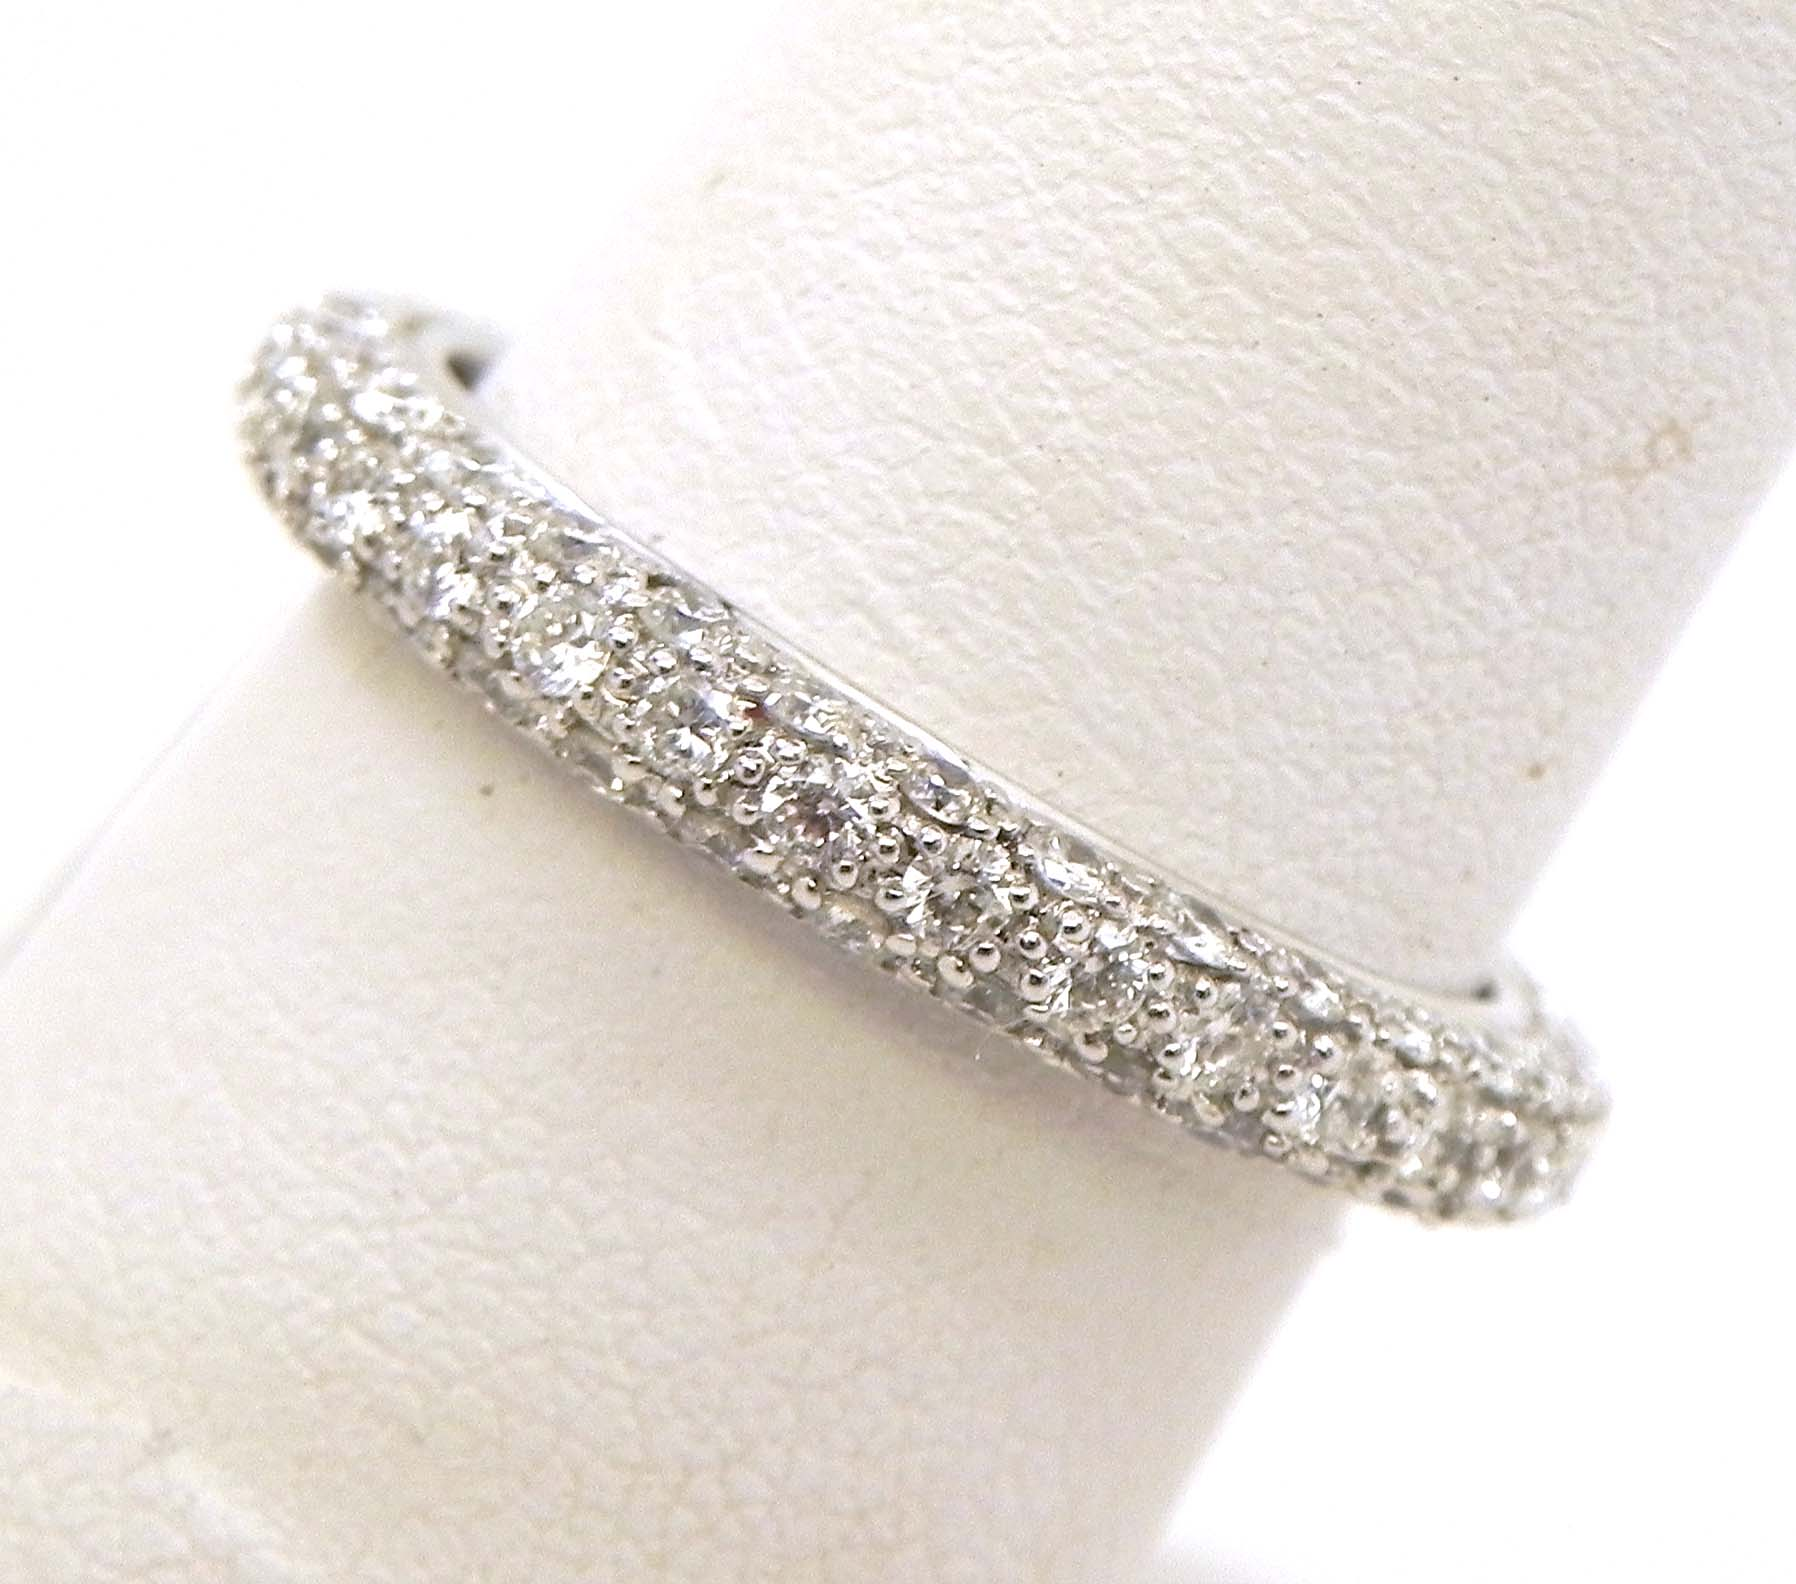 ladies 18k white gold 3 row diamonds eternity wedding band white gold wedding band White Gold 3 Row Diamonds Eternity Wedding Band 00 Previous Next